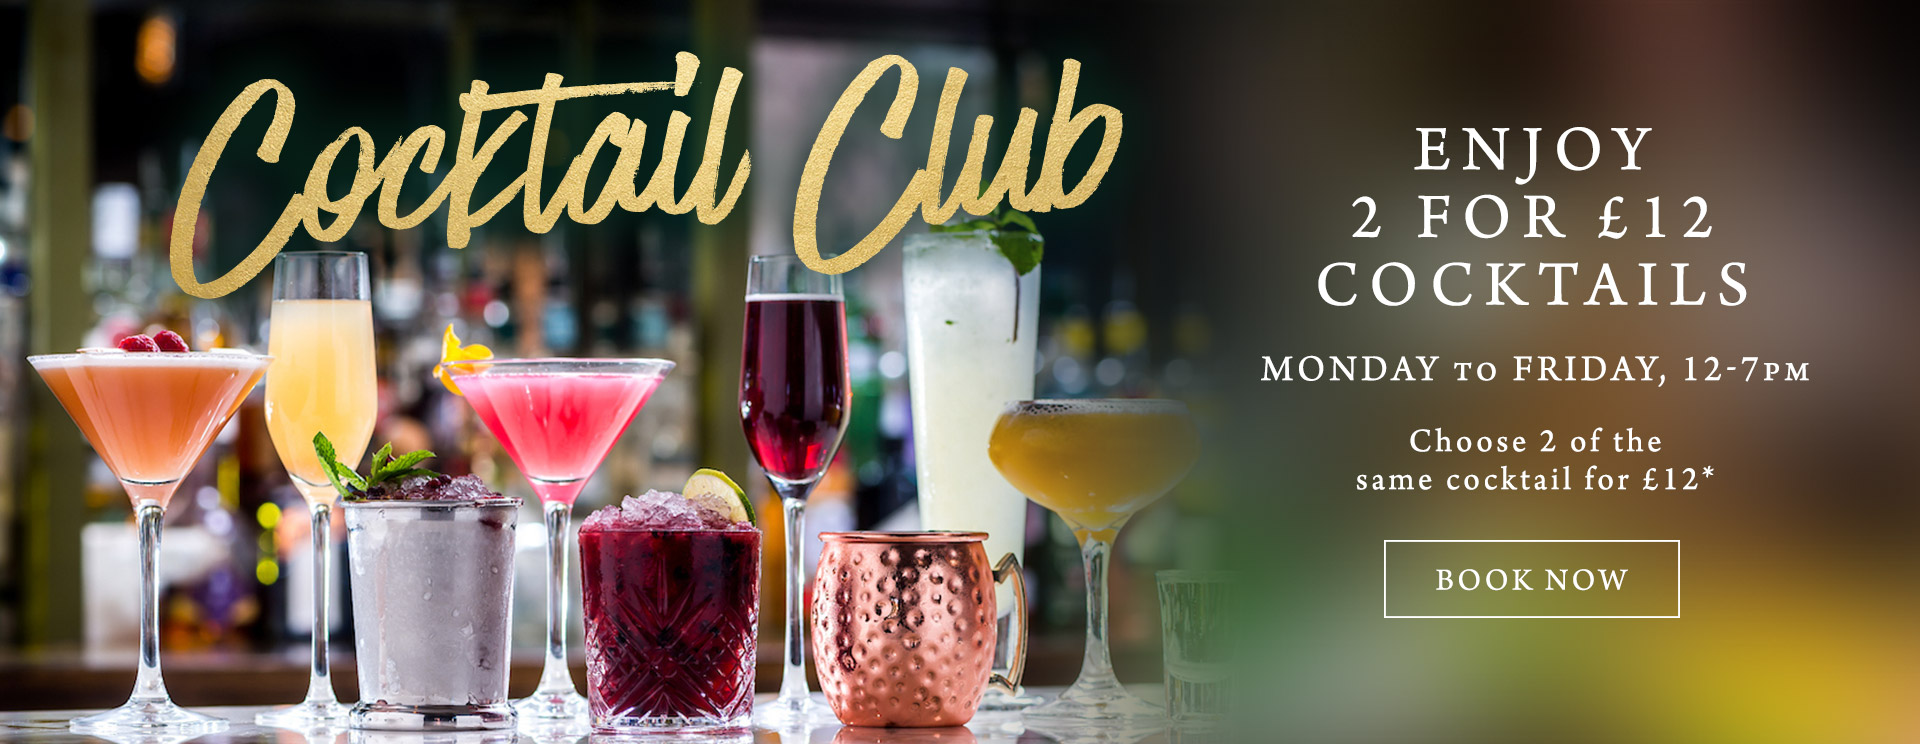 2 for £12 cocktails at The Freemasons Arms